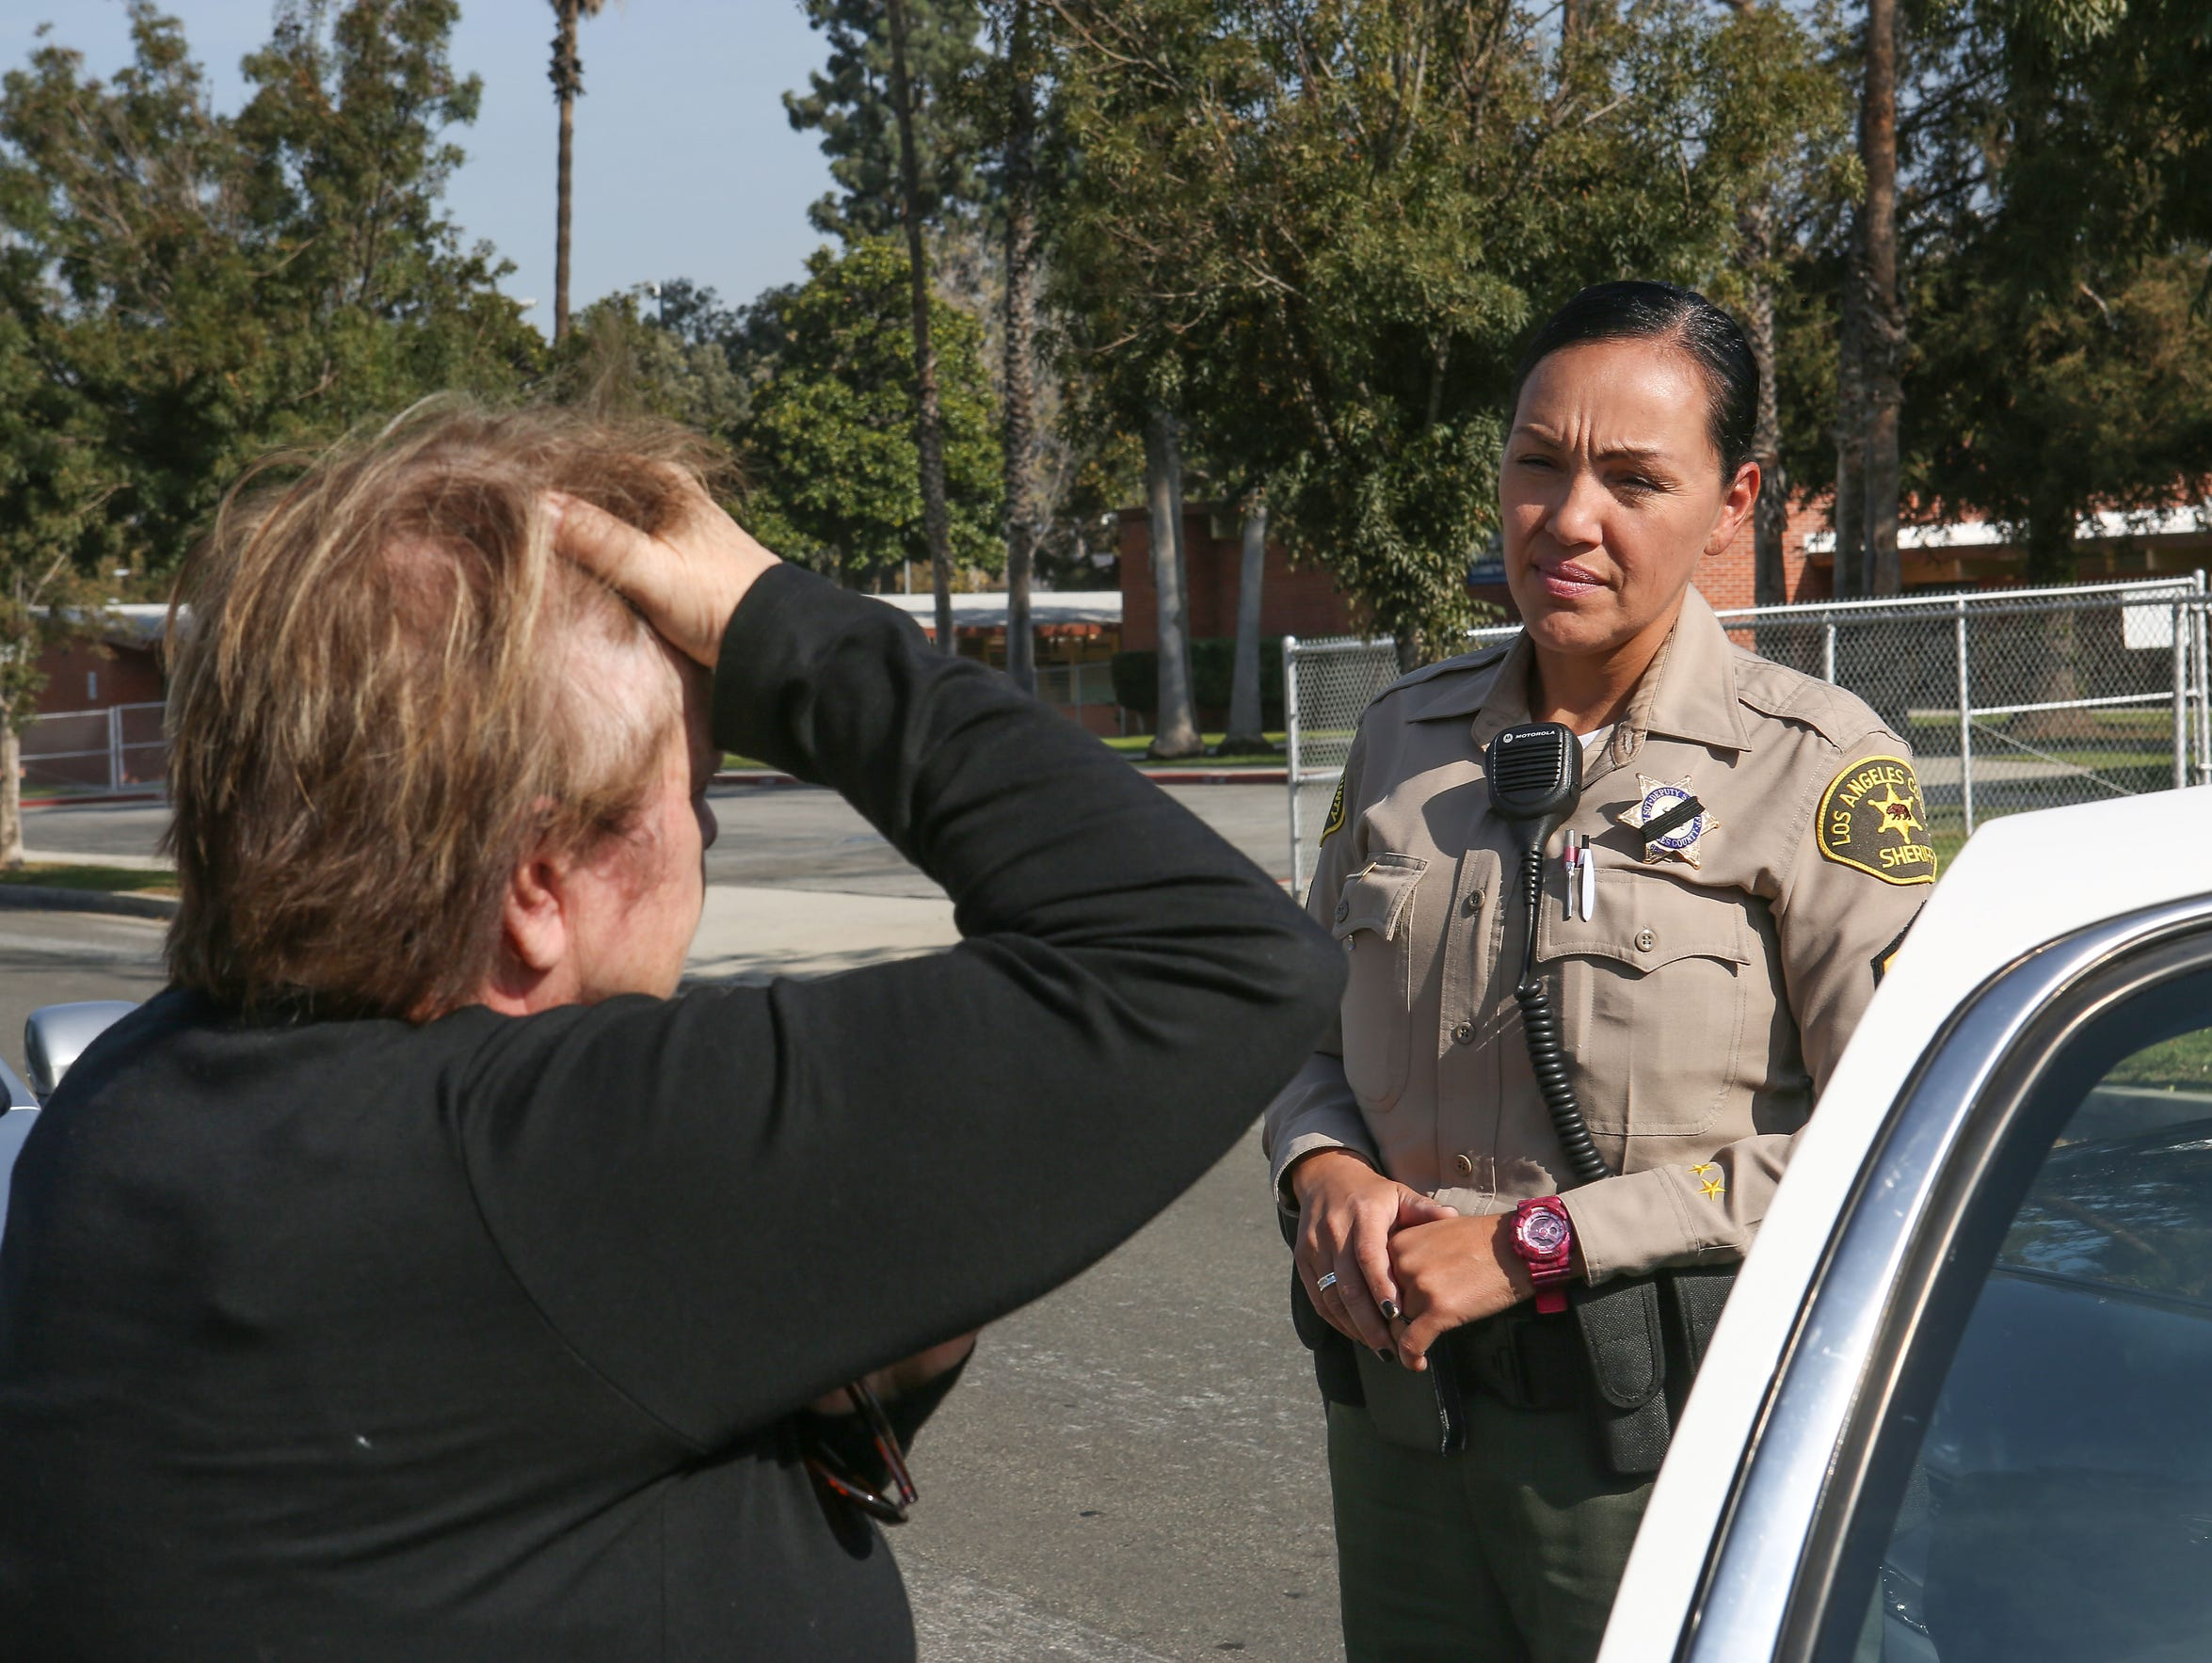 Los Angeles County Sheriff's deputy Joanne Arcos talks